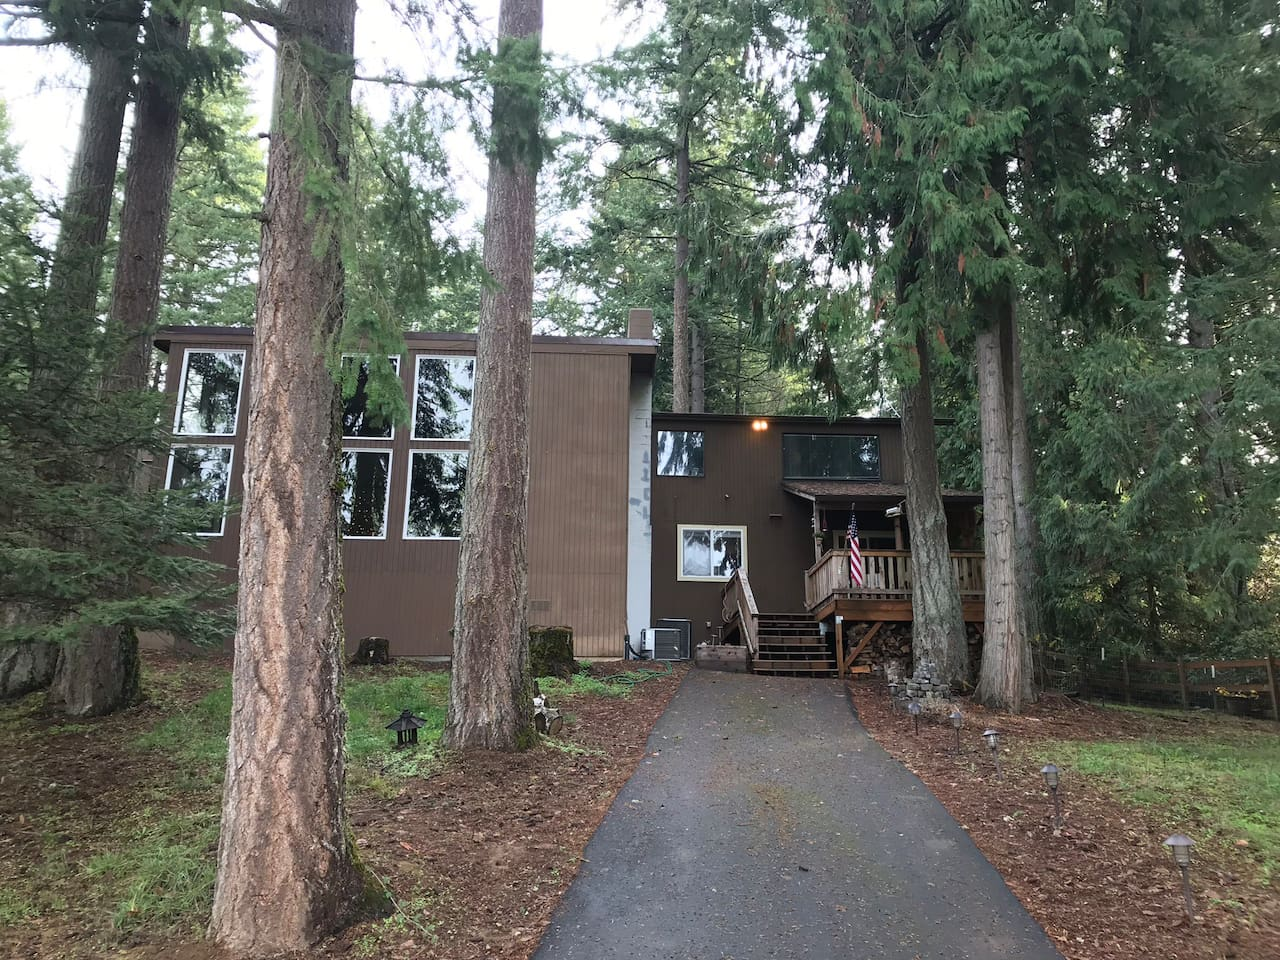 Airbnb is the dark brown private section of the house (duplex style) access and parking located in the rear of the house, right hand side.  This driveway and  private deck is for Airbnb guests.   Lighter brown side is occupied by Owner.